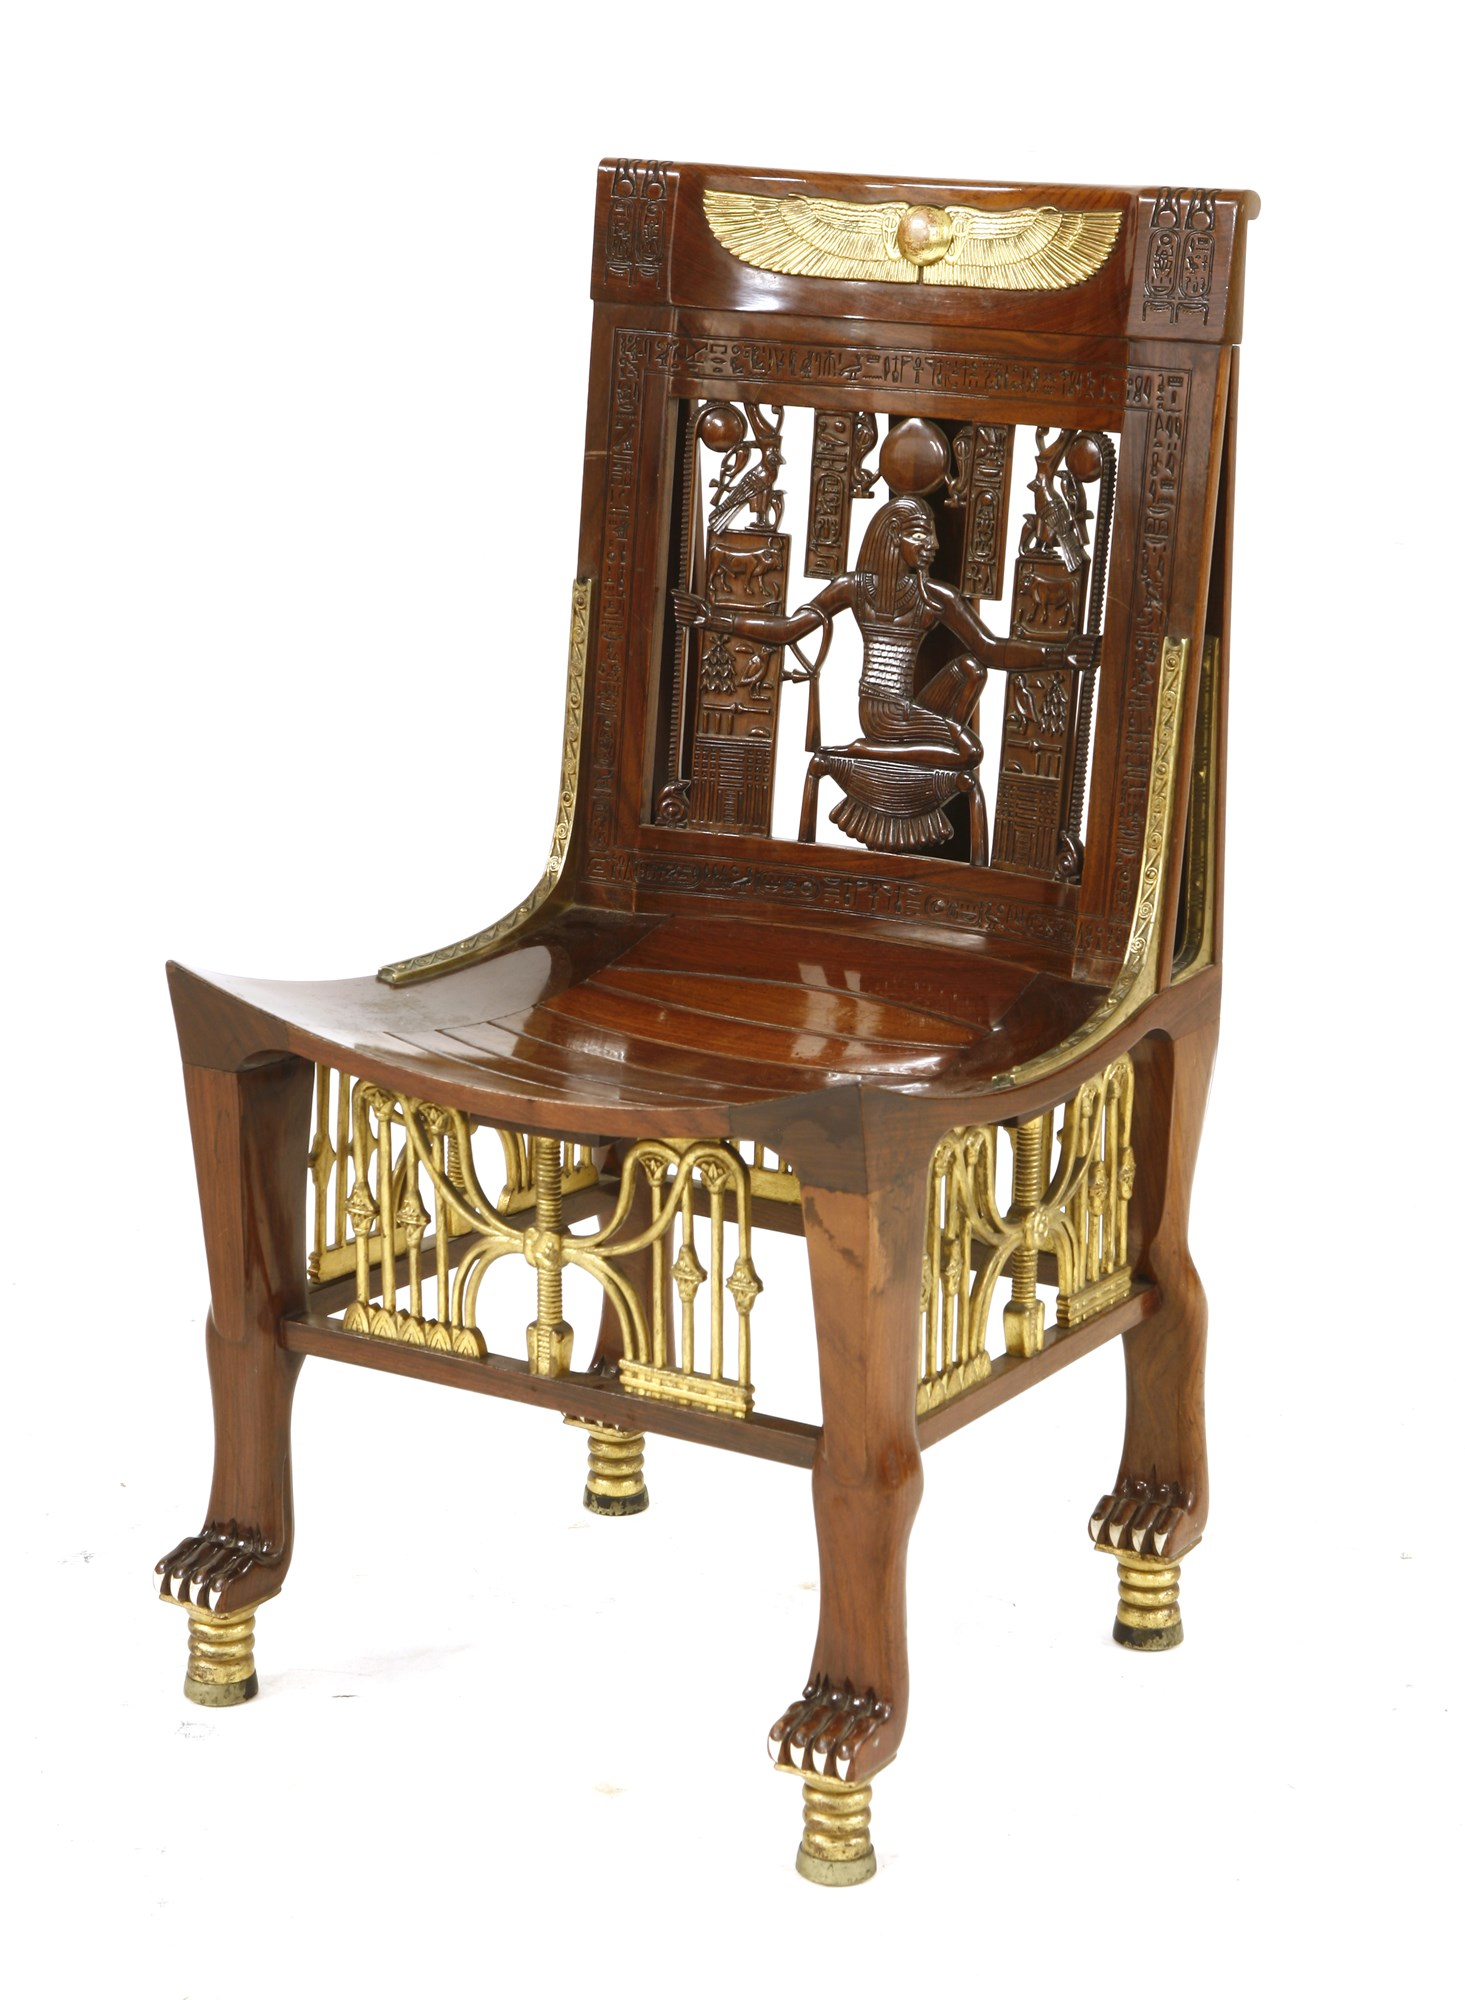 A splendid example of 'Egyptomania' - a very high quality copy of the bone-inlaid and parcel gilt ceremonial chair found in the tomb of Tutankhamen in 1922. It carries an auction estimate of £10,000-15,000